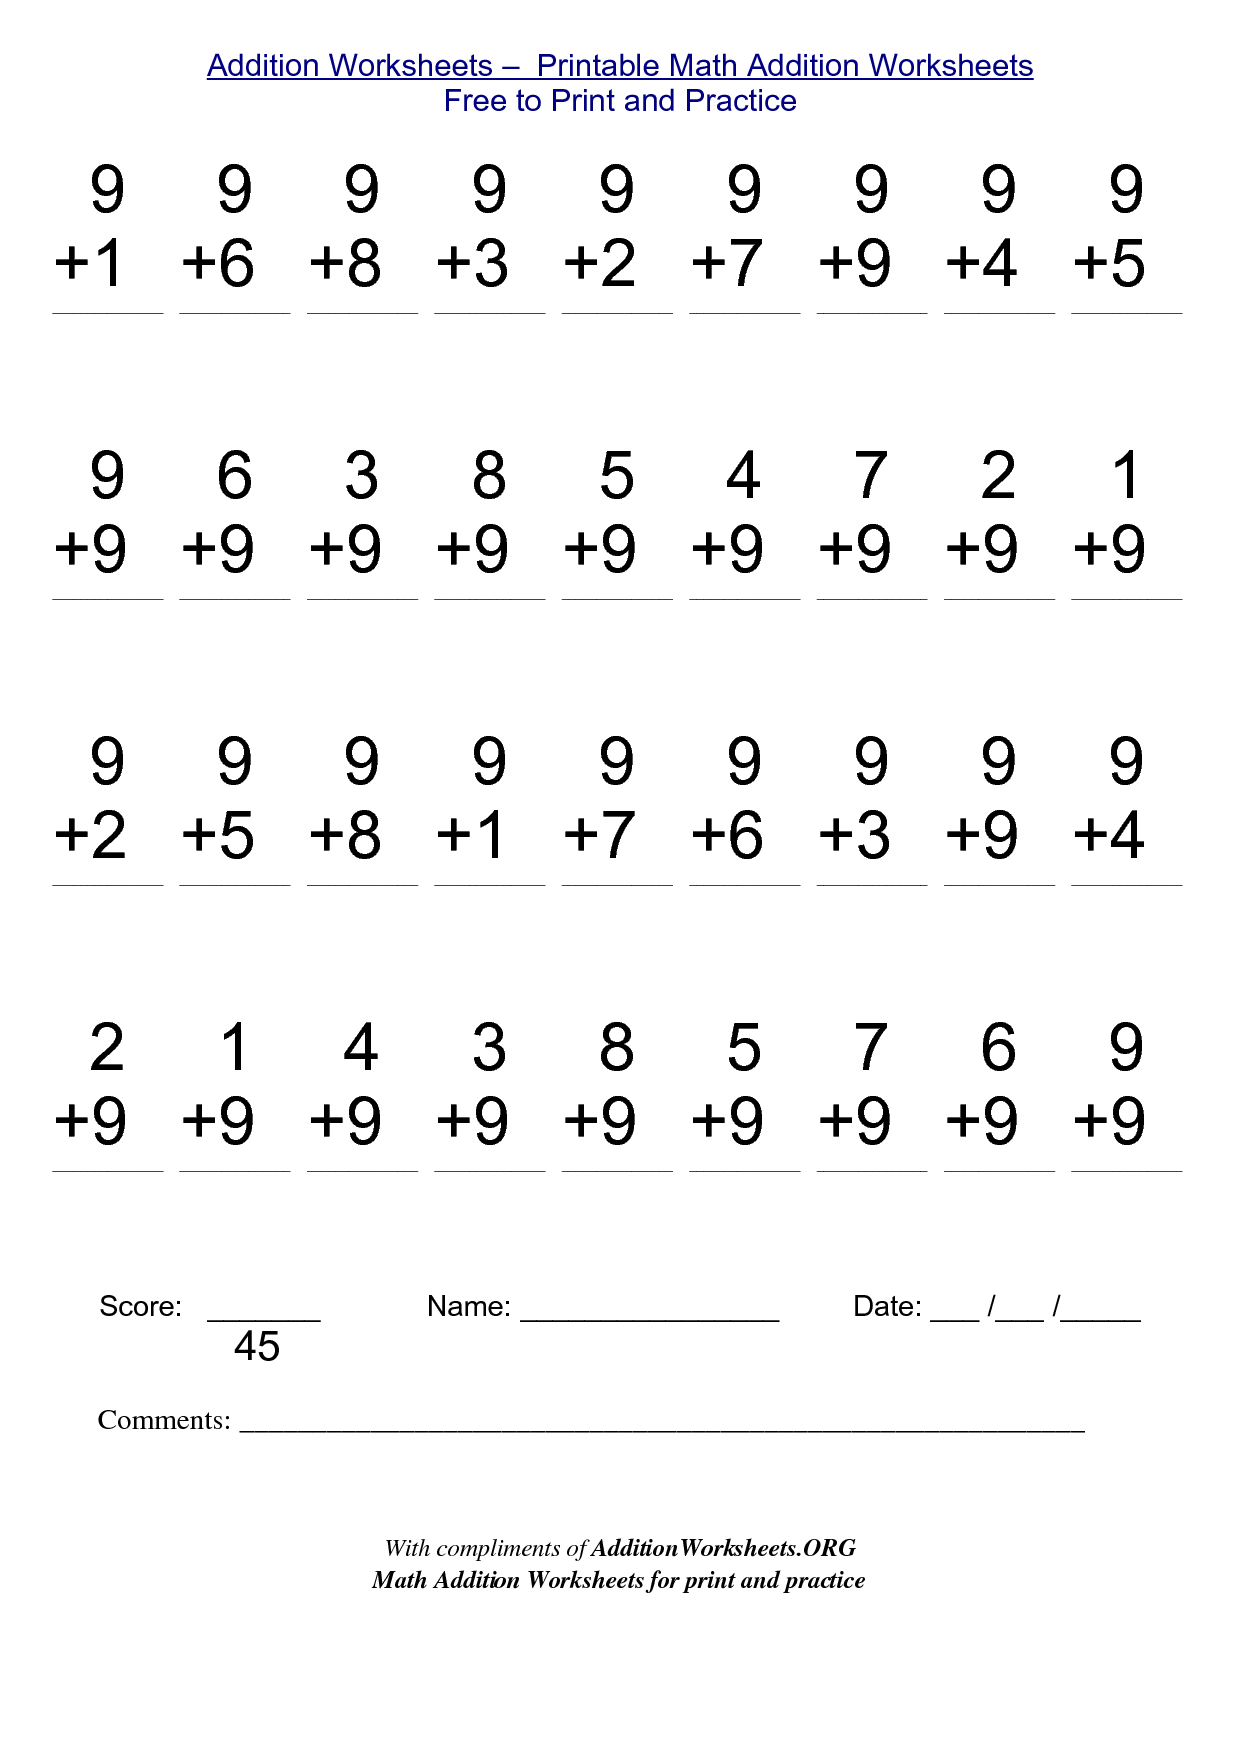 Math Worksheets for Free to Print Alot ME – Free Printable Worksheets for Math